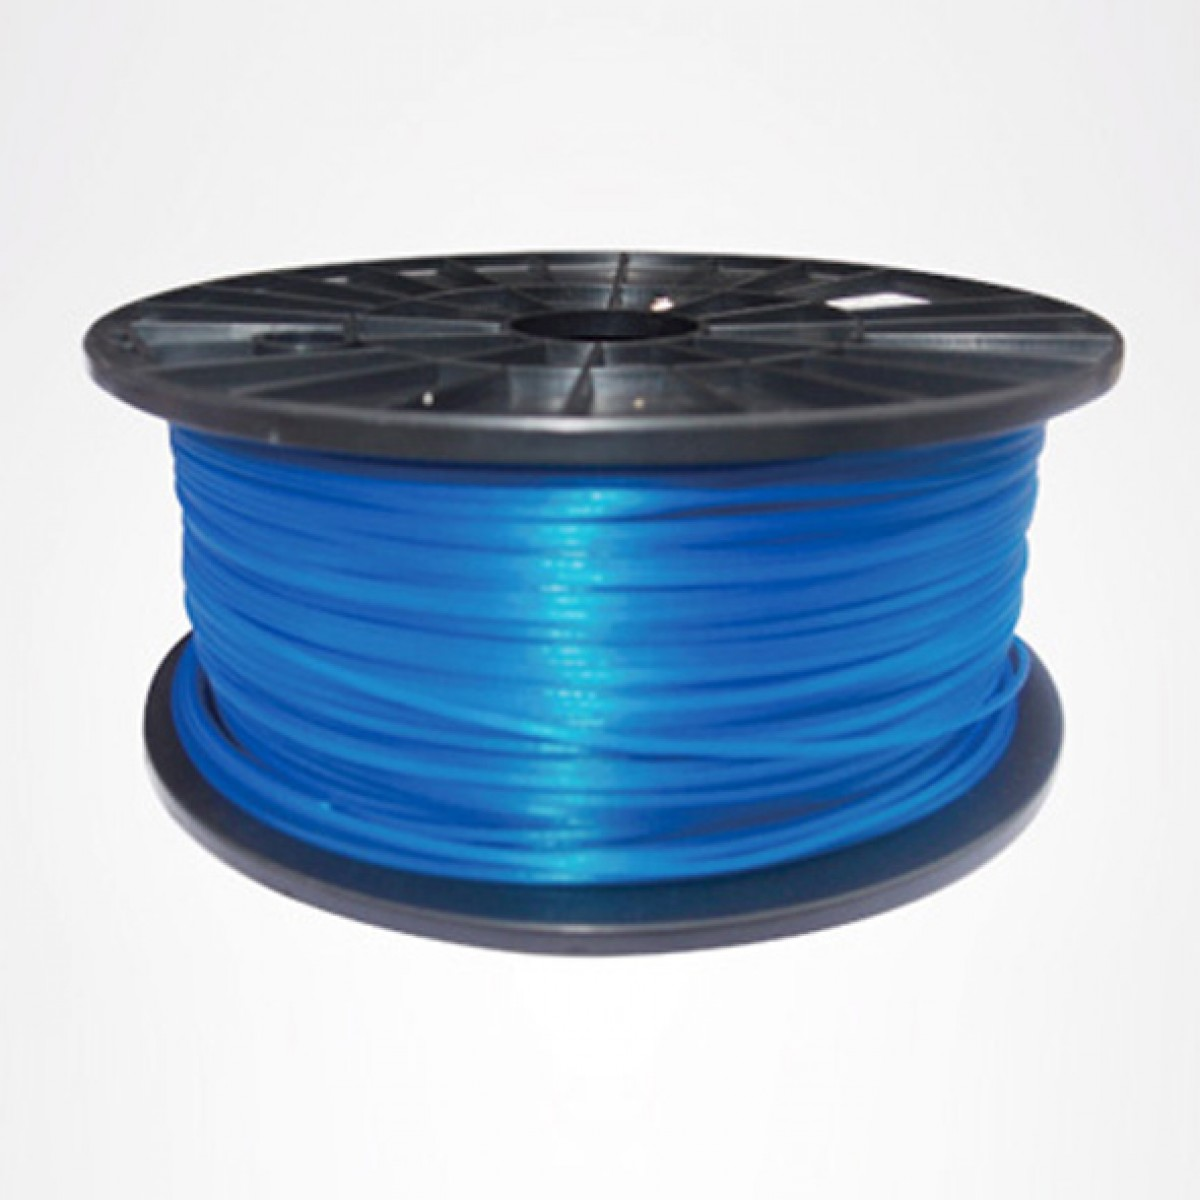 Premium Quality Blue ABS 3D Filament compatible with the Universal PFABSBL